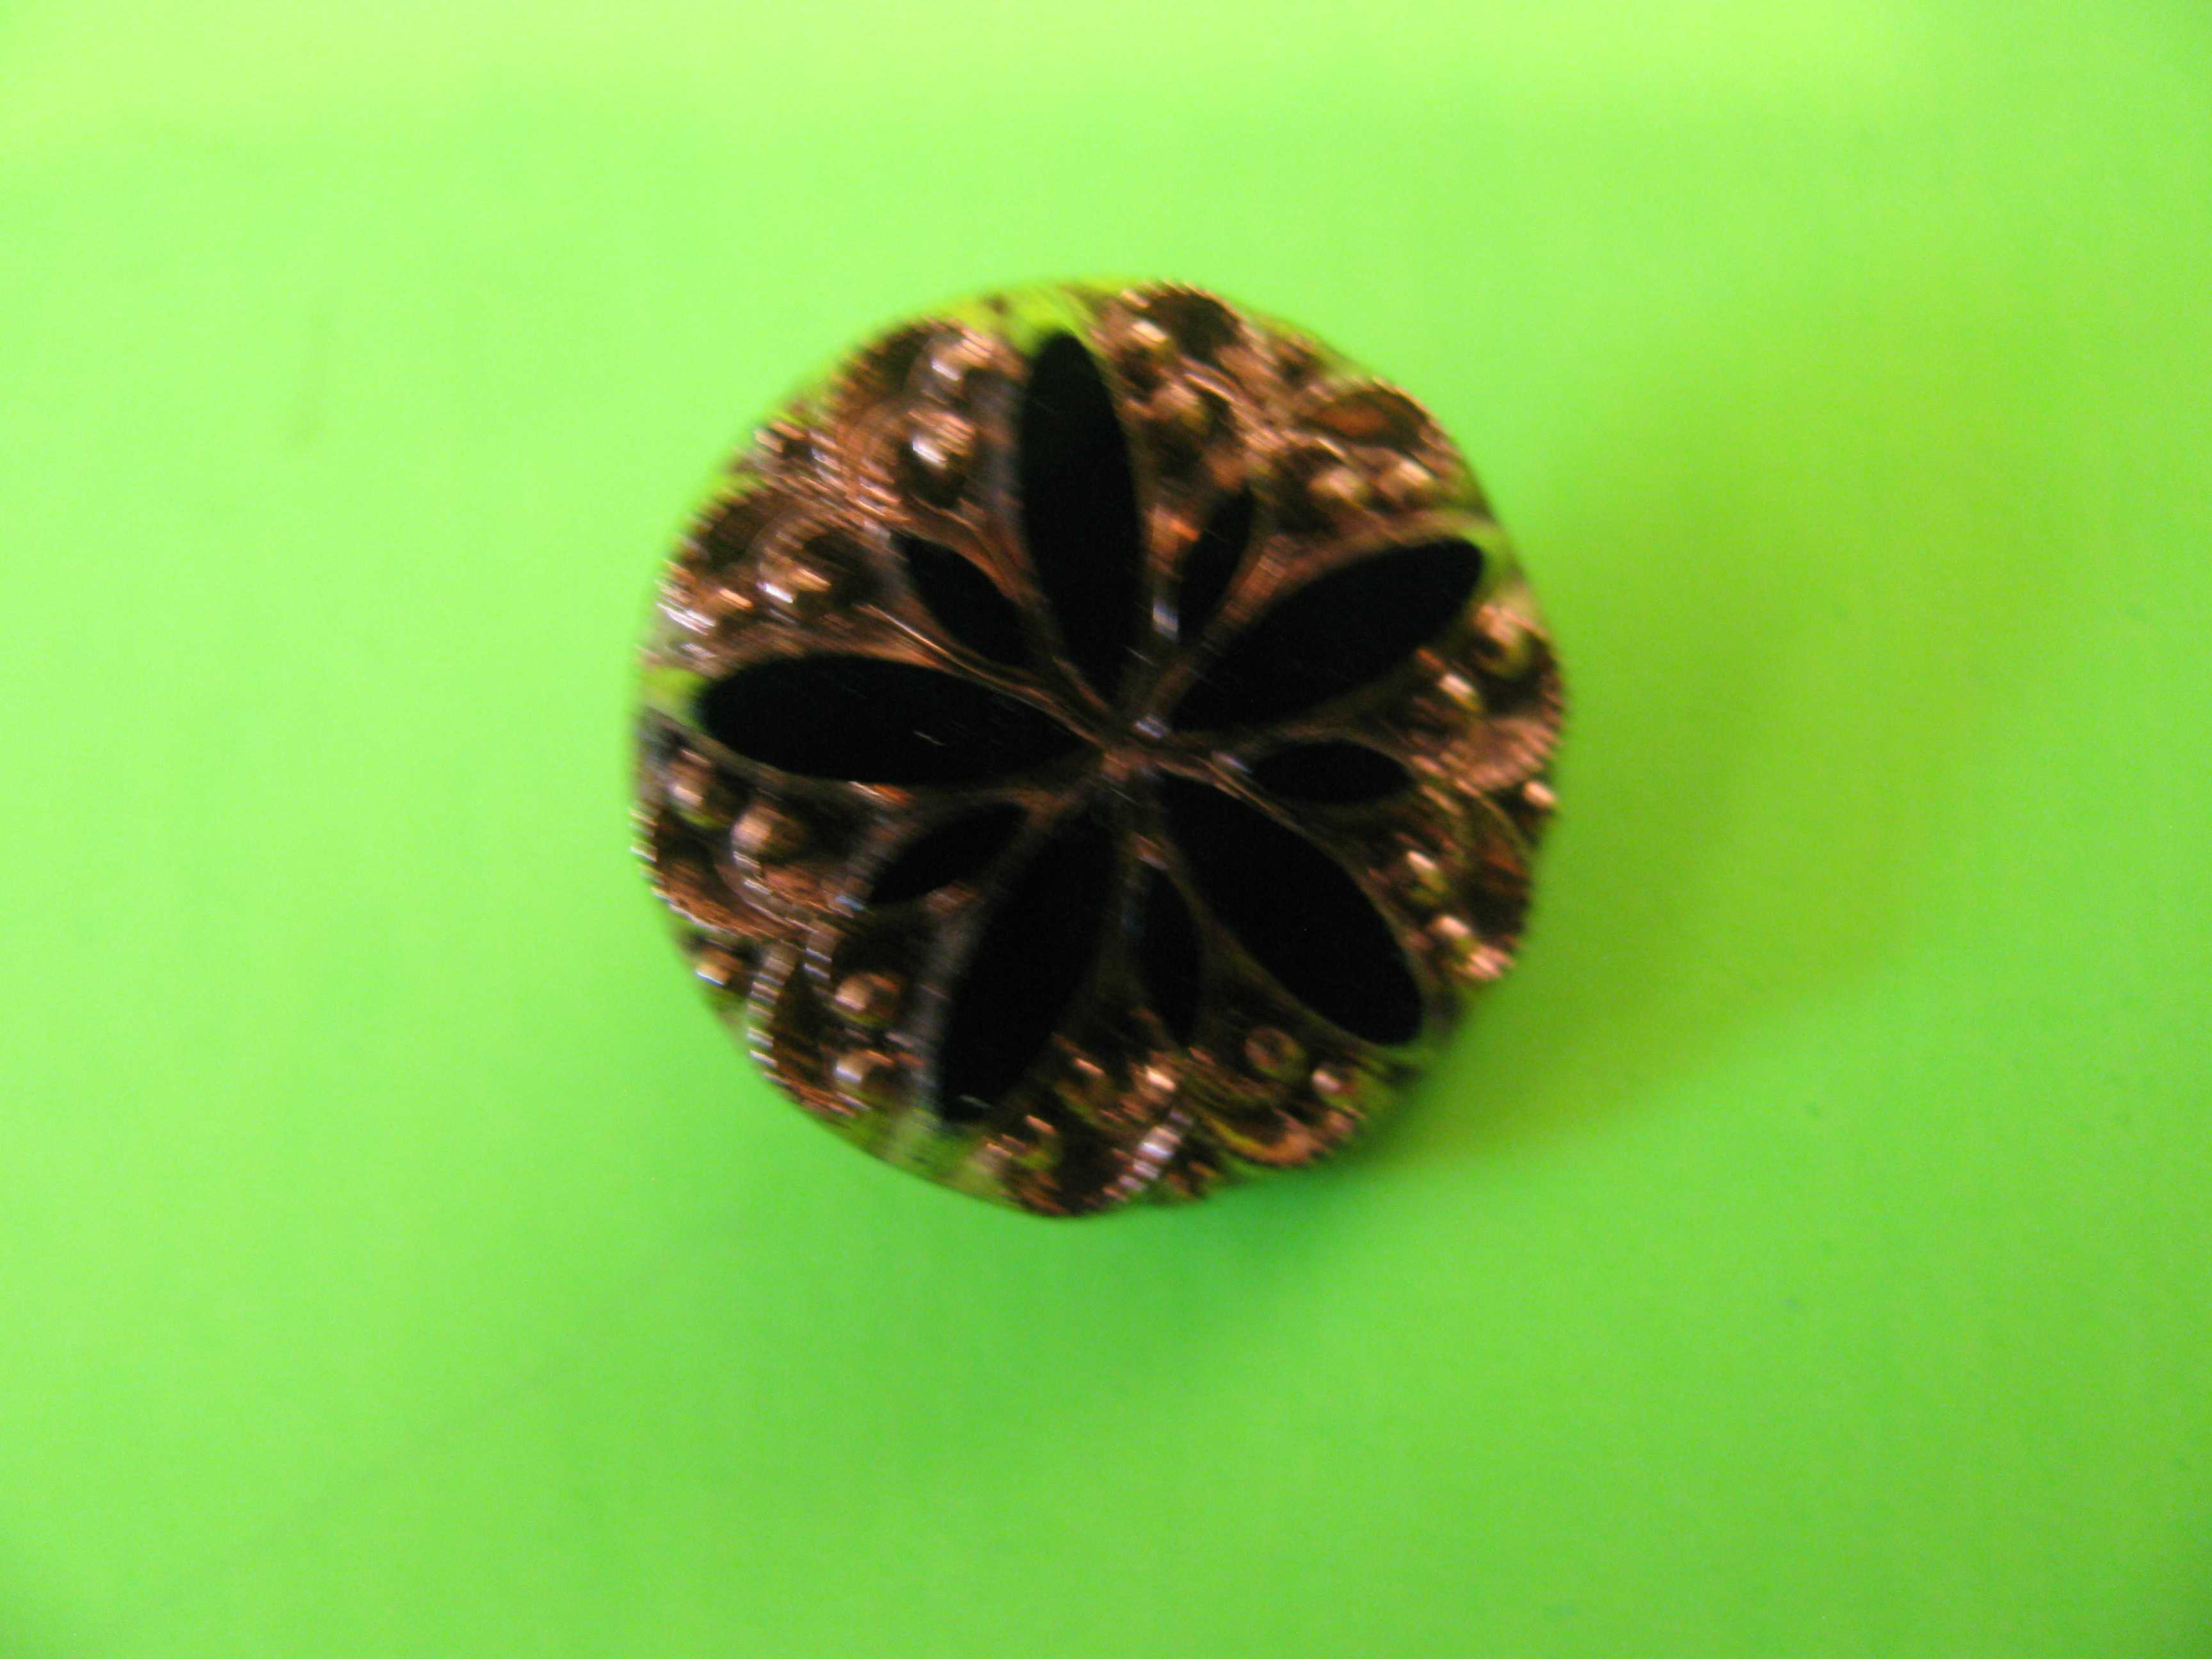 Antique Black Glass in Star Shaped Patterns with Gold Inlay Button with Metal Loop Shank